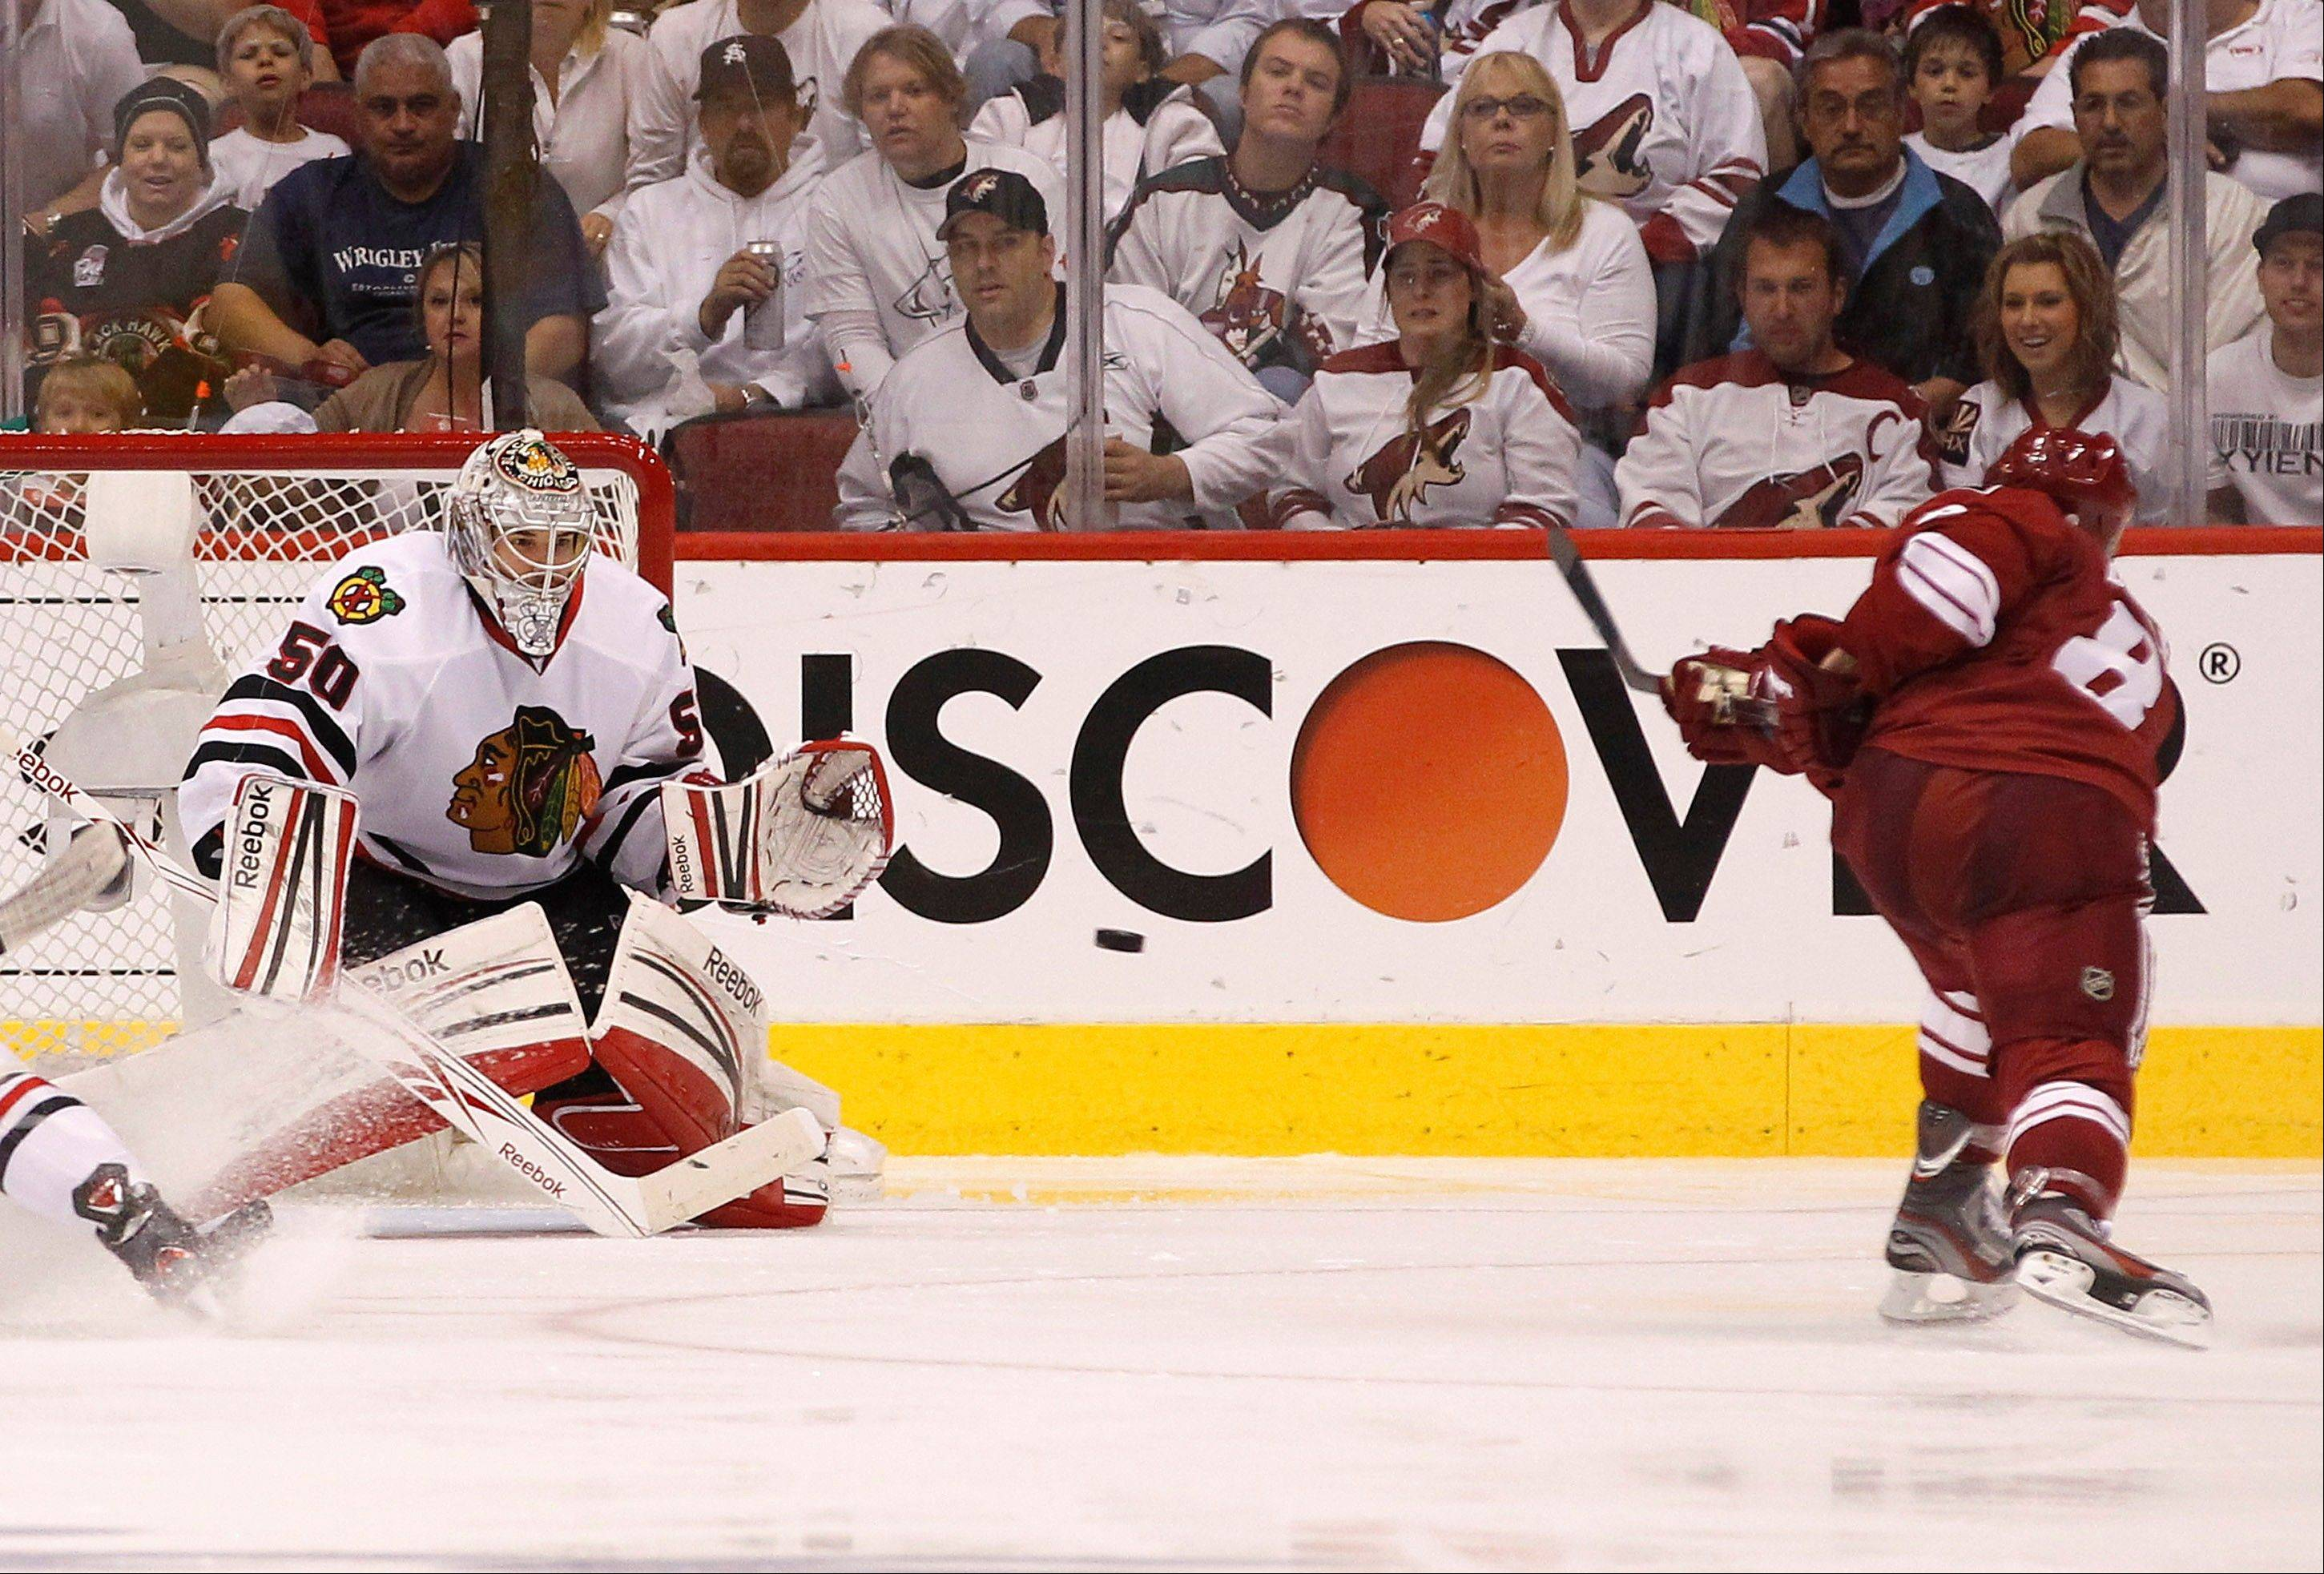 Phoenix Coyotes' Gilbert Brule (8) sends a shot past Chicago Blackhawks' Corey Crawford (50) for a goal during the second period in Game 5 of an NHL hockey Stanley Cup first-round playoff series Saturday, April 21, 2012, in Glendale, Ariz. AP Photo/Ross D. Franklin)